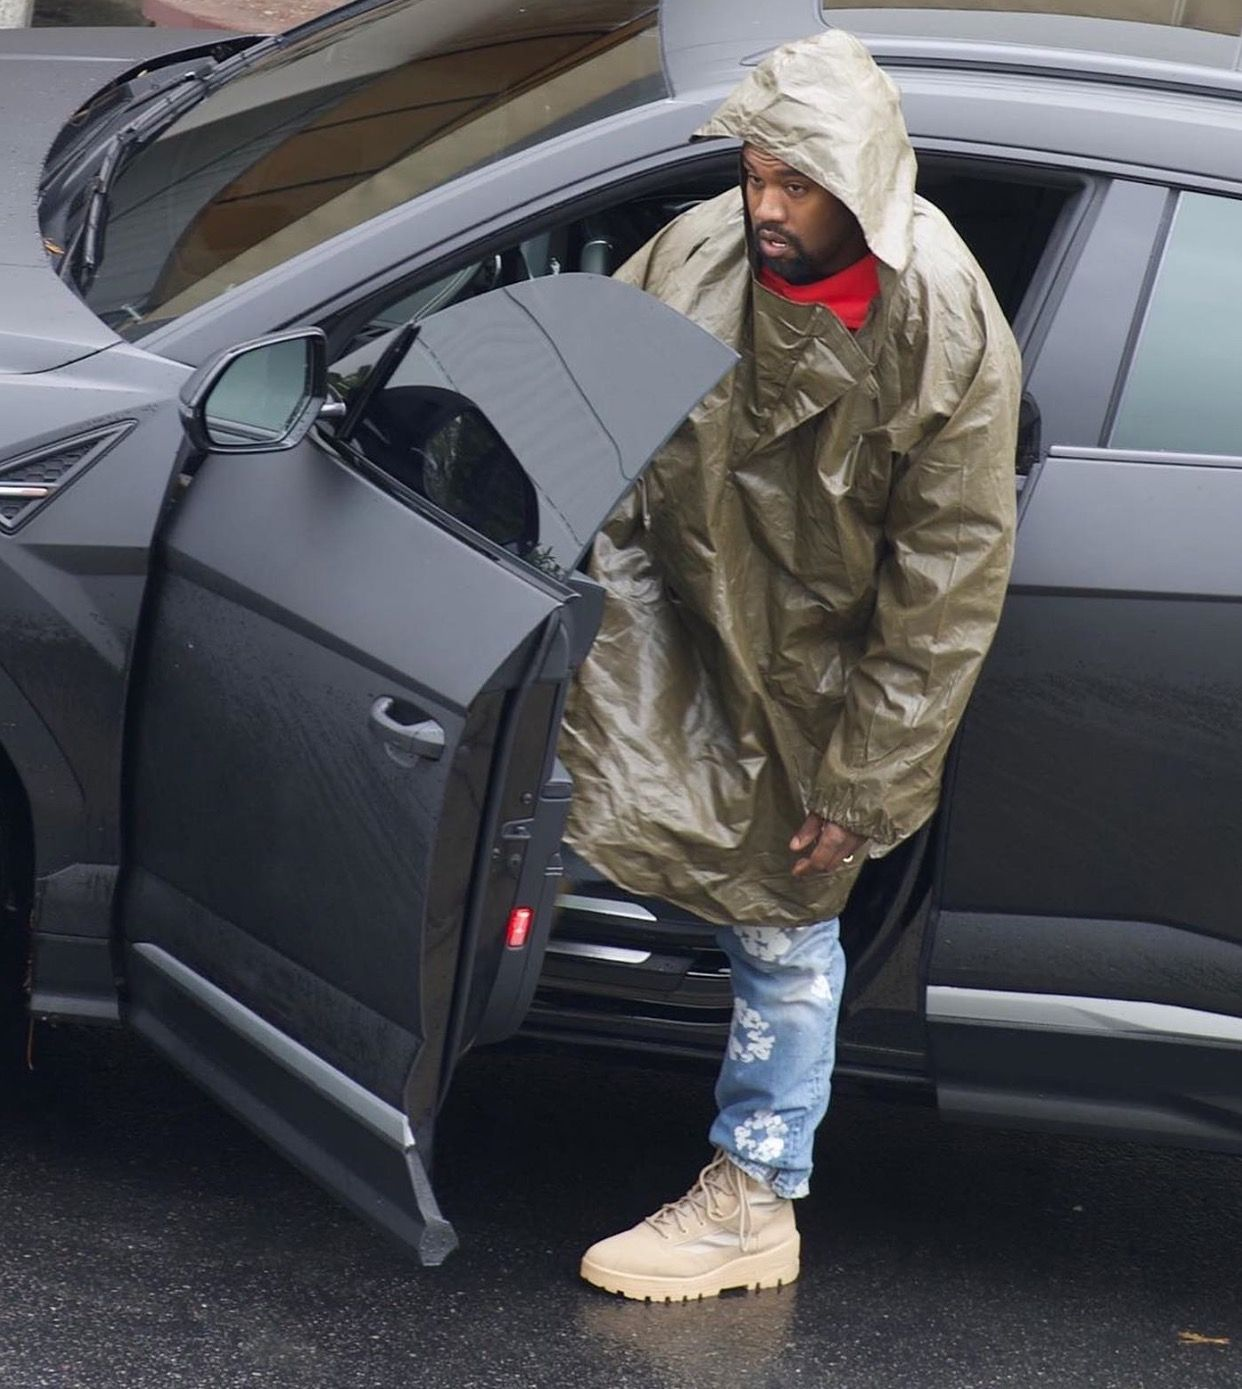 Pin By Jirawech Sirirattapong On Kanye West In 2020 Yeezy Fashion Kanye West Fashion